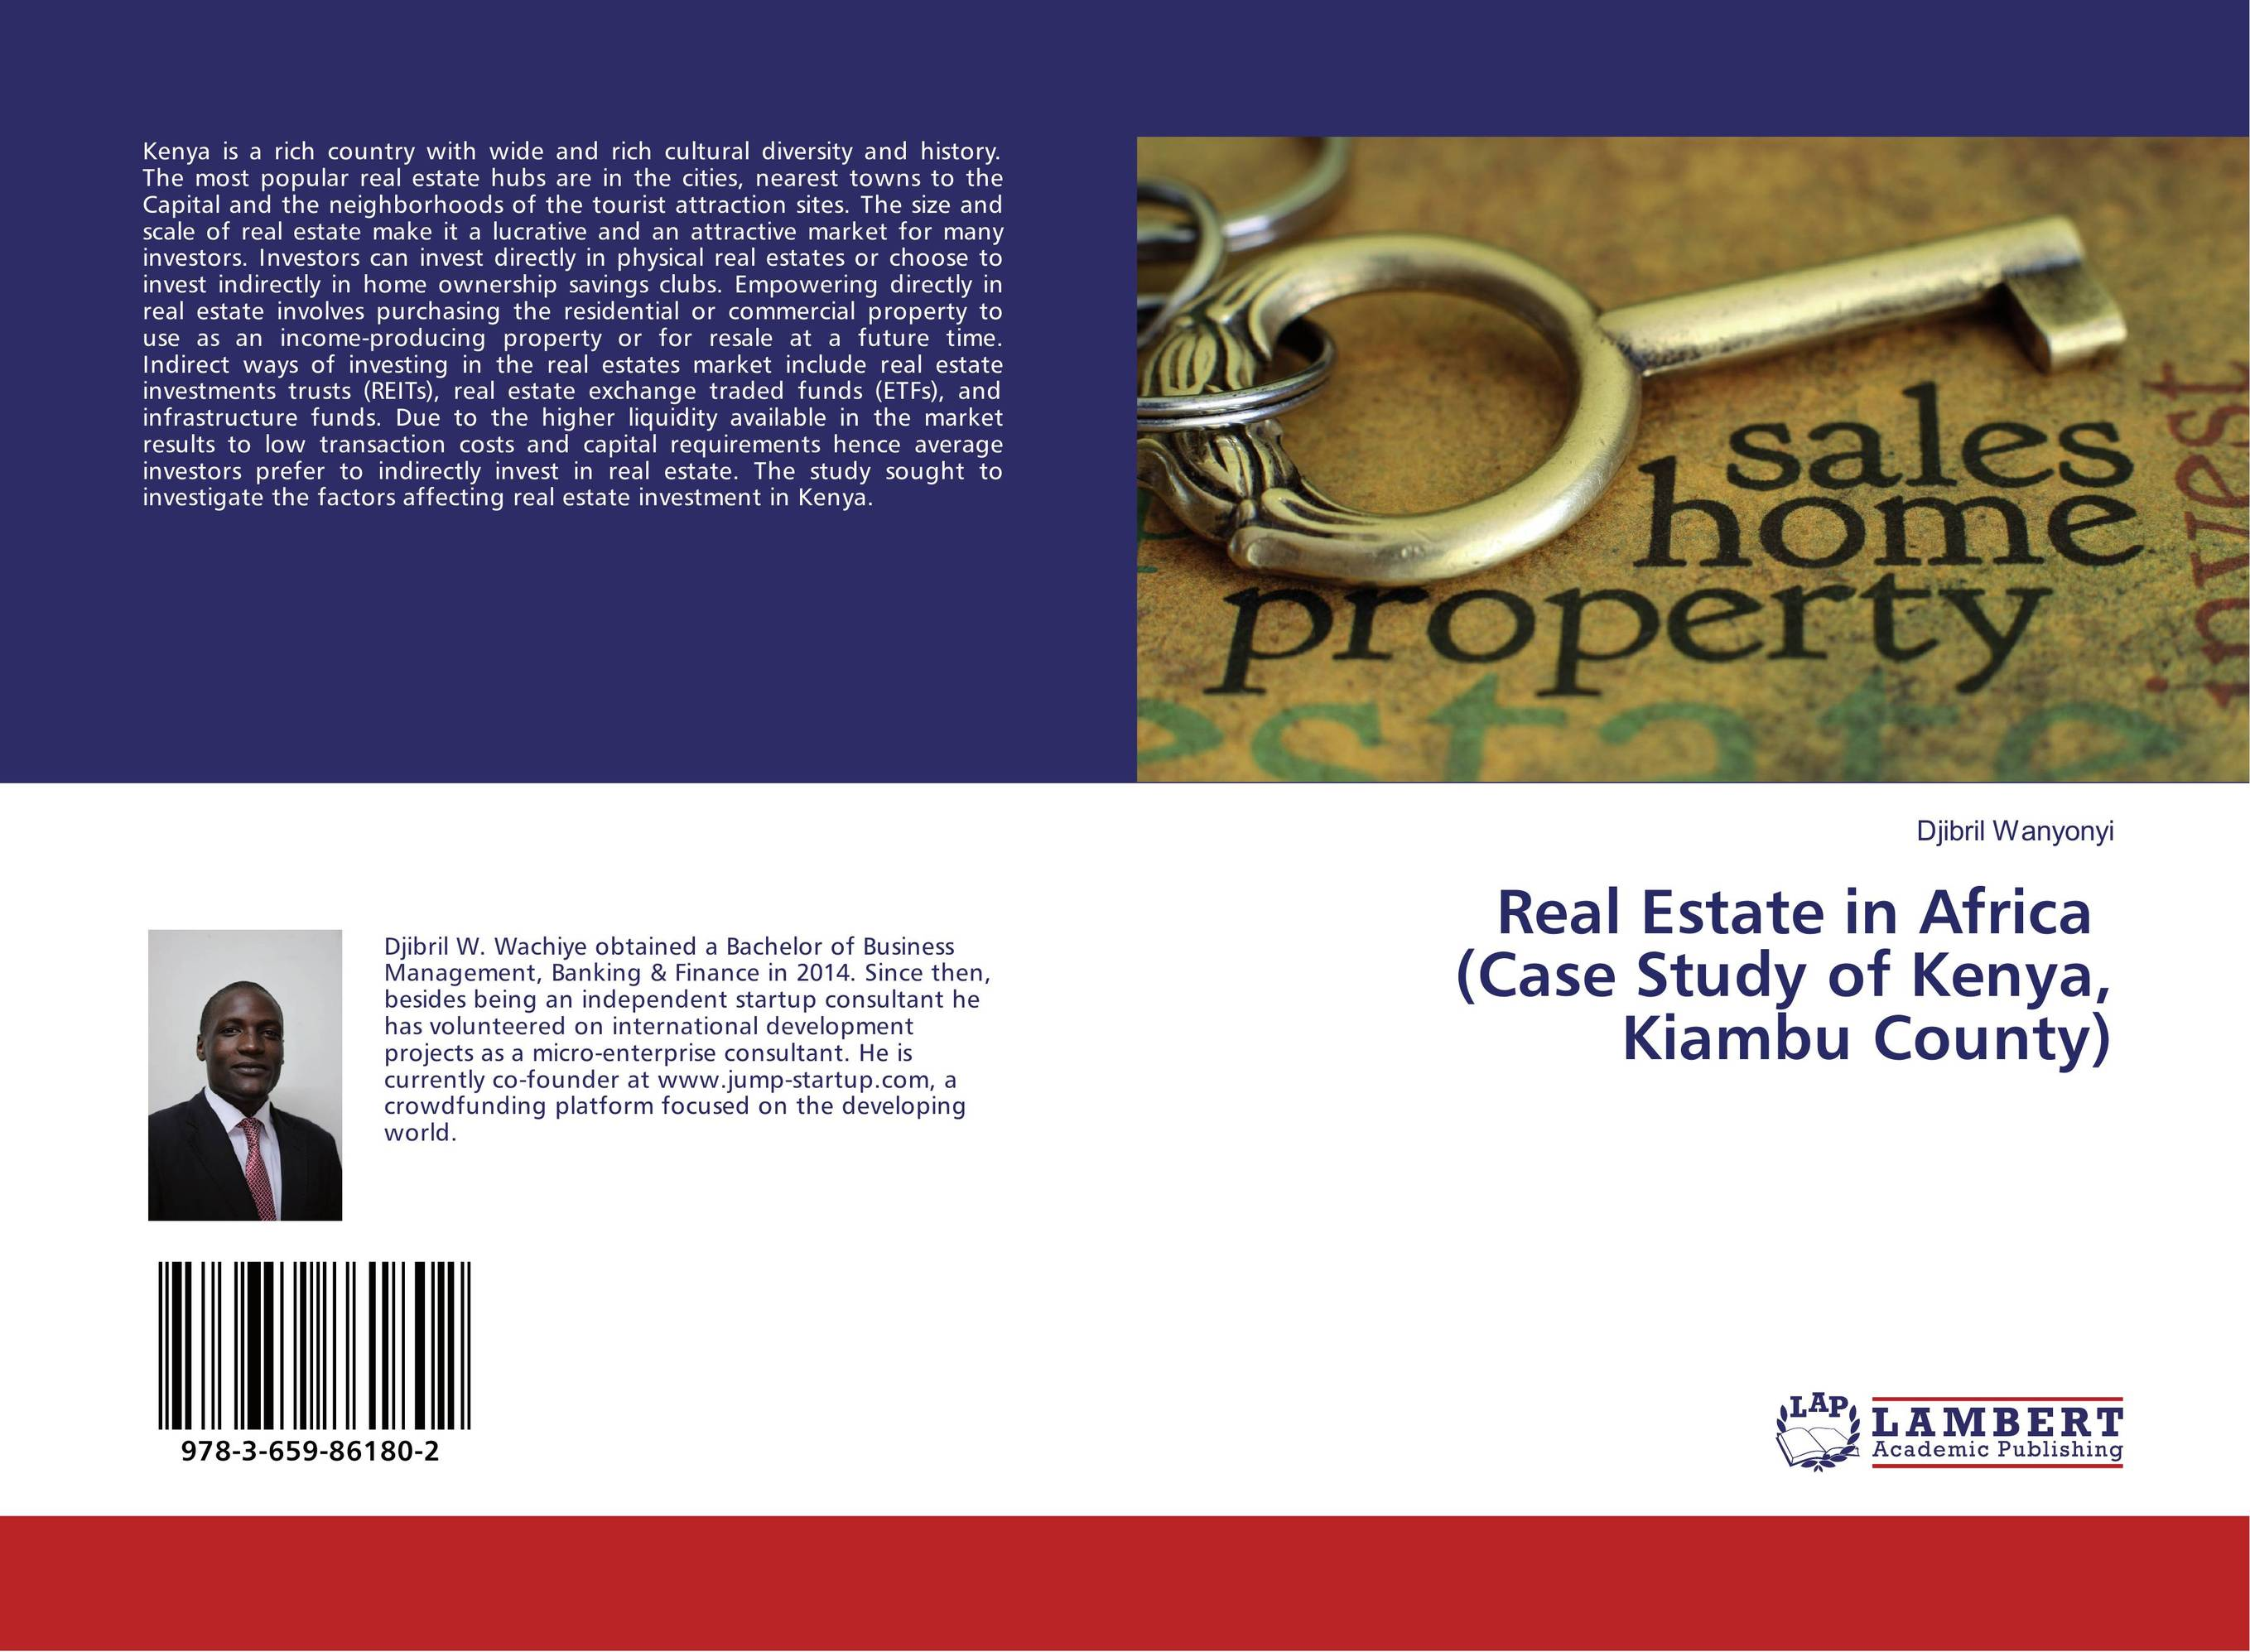 Real Estate in Africa (Case Study of Kenya, Kiambu County) james lumley e a 5 magic paths to making a fortune in real estate